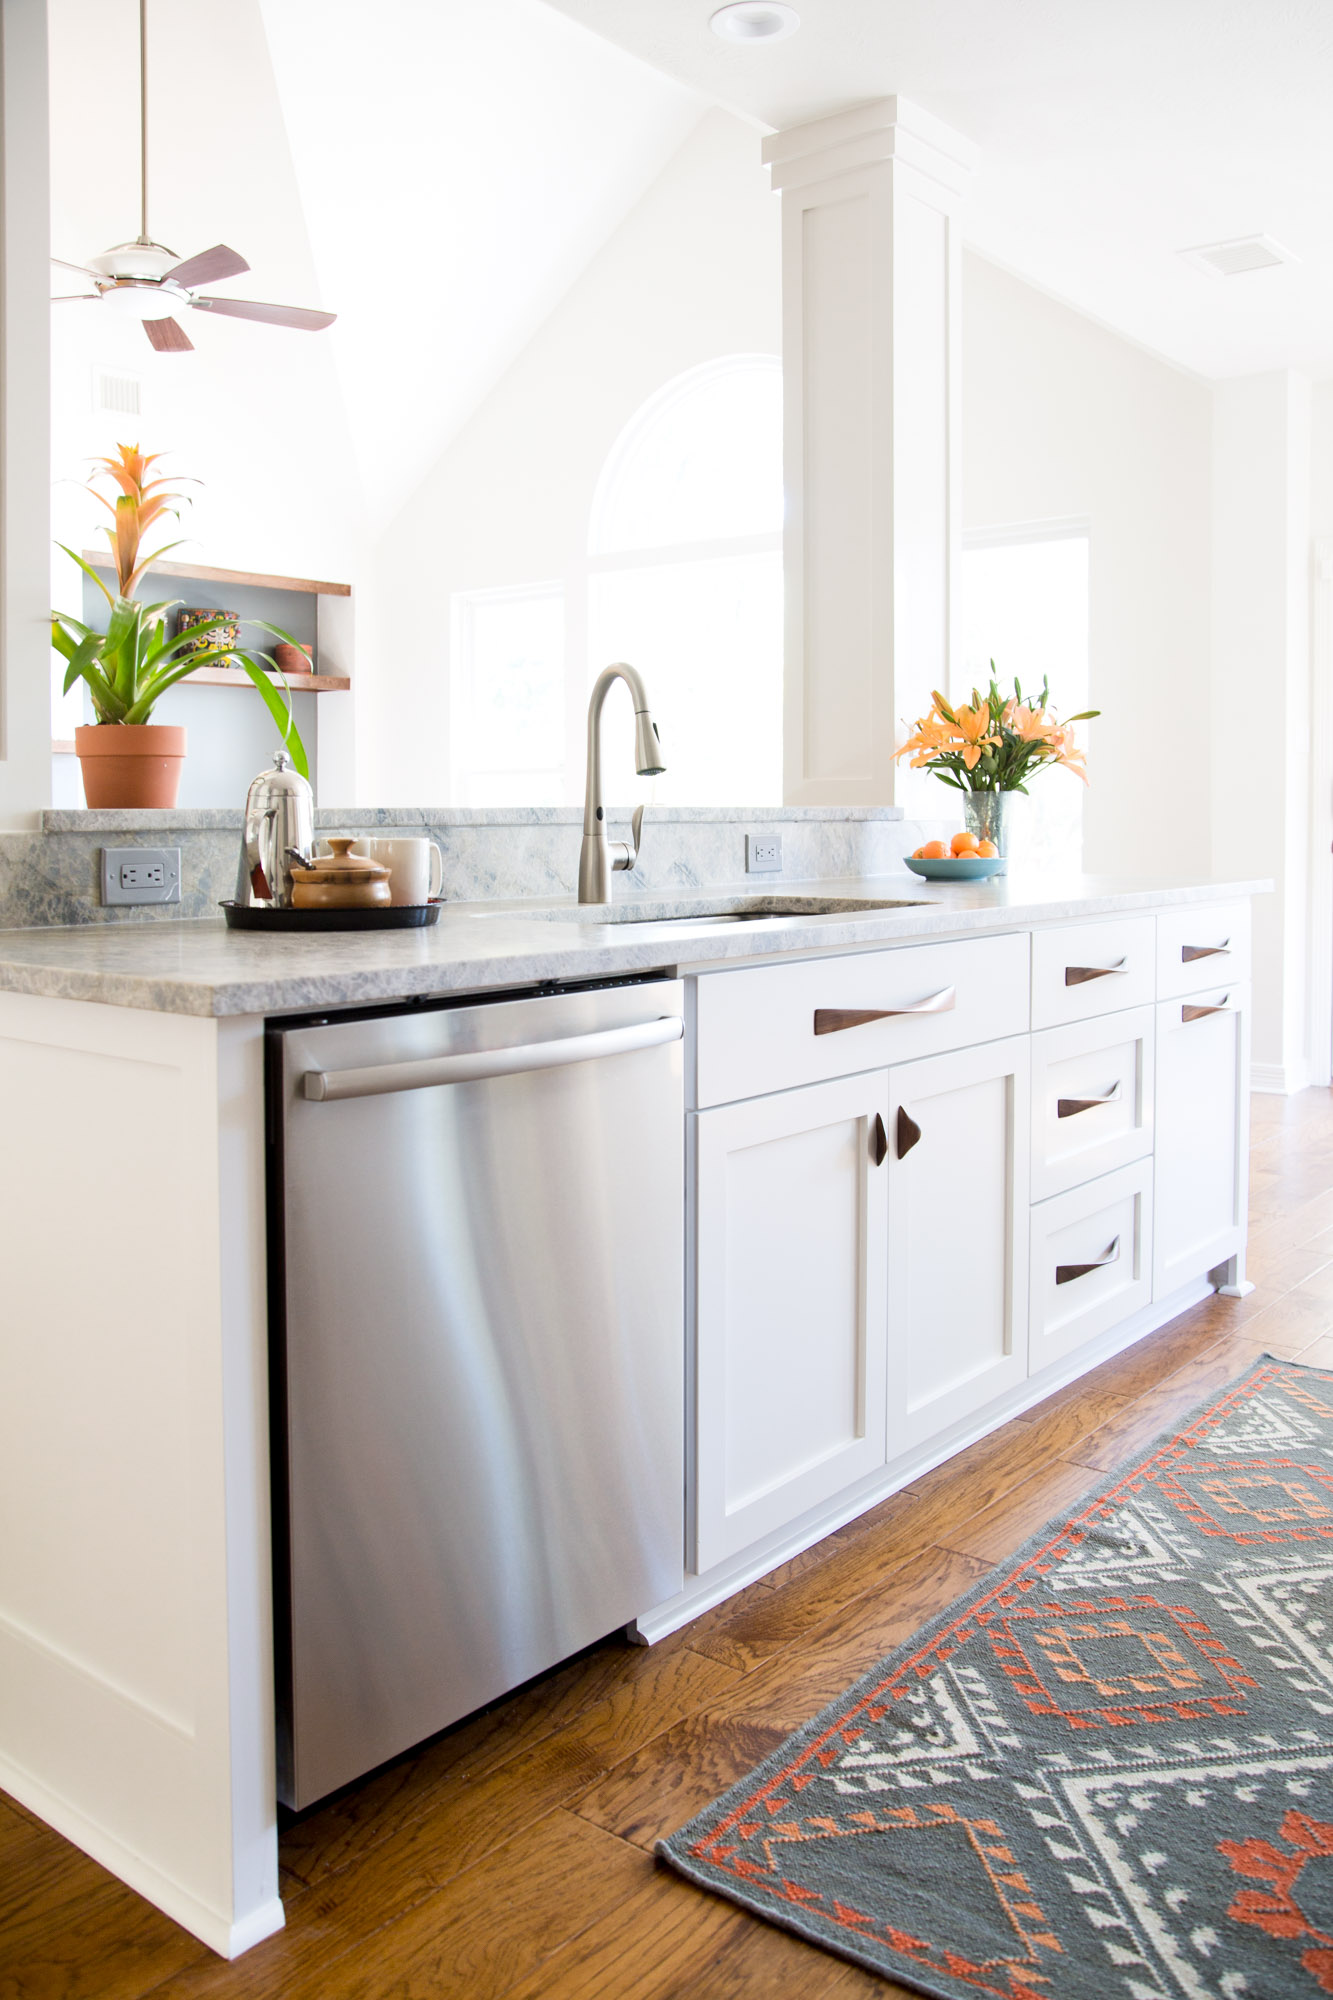 Simple white kitchen remodel with quartzite countertops, wood floors, and wood cabinet pulls | Carla Aston, Designer | Tori Aston, Photographer #whitekitchen #midcenturystyle #quartzitecountertops #kitchenremodel #kitchenremodelideas